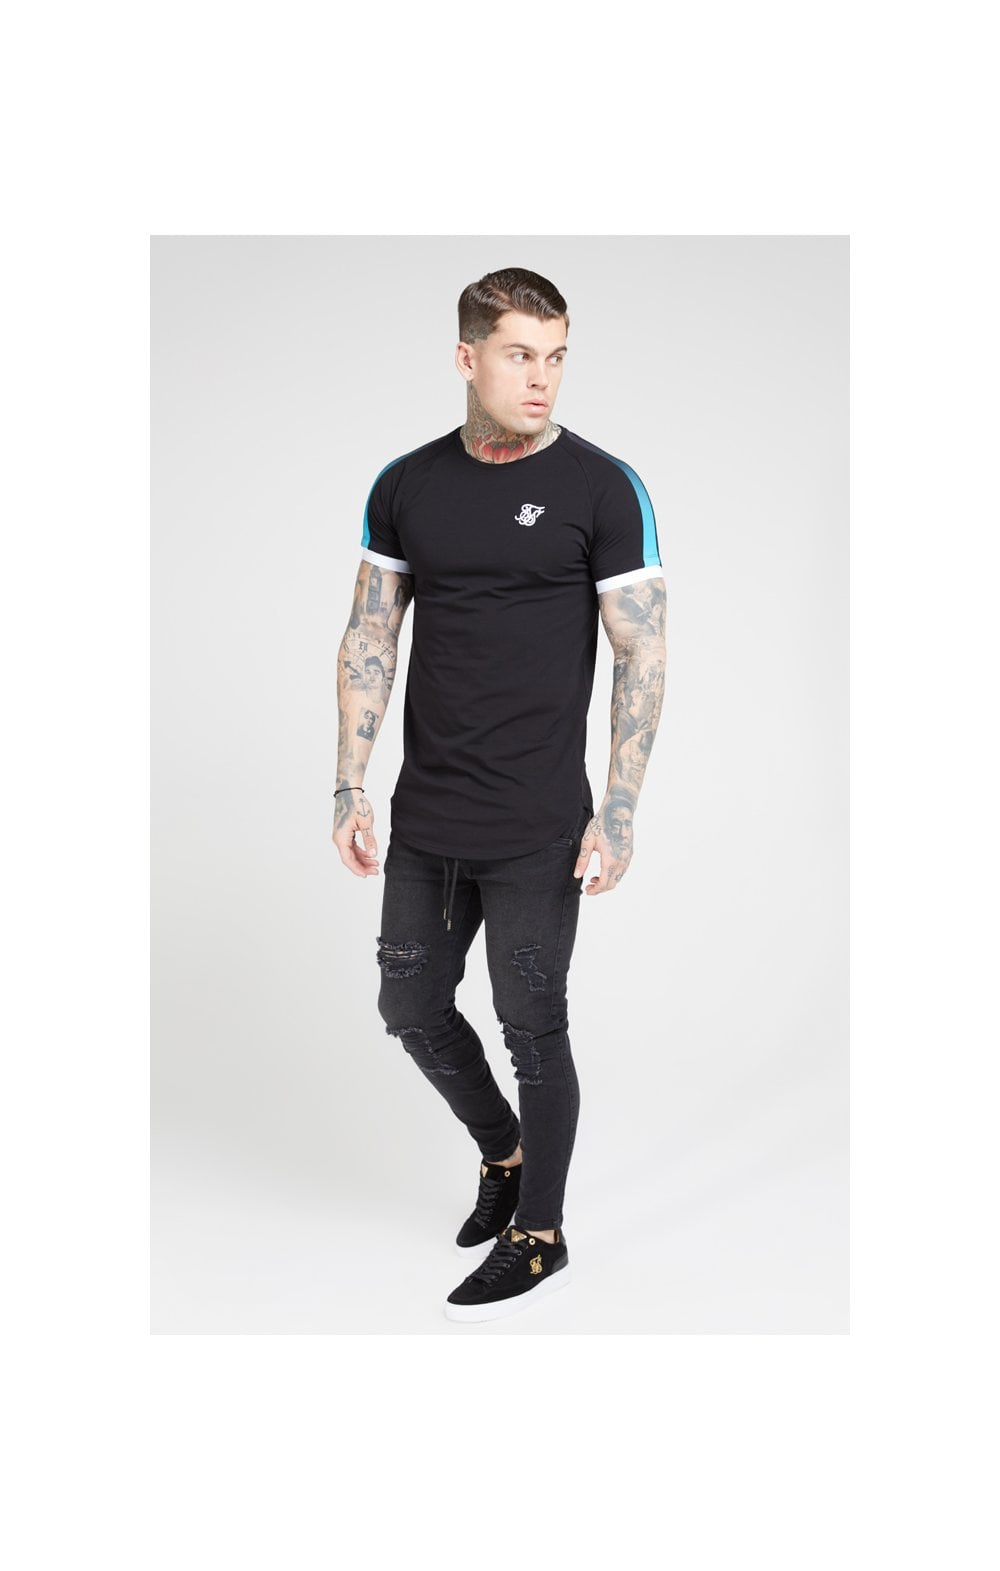 SikSilk S/S Inset Cuff Fade Panel Tech Tee – Black & Teal (3)